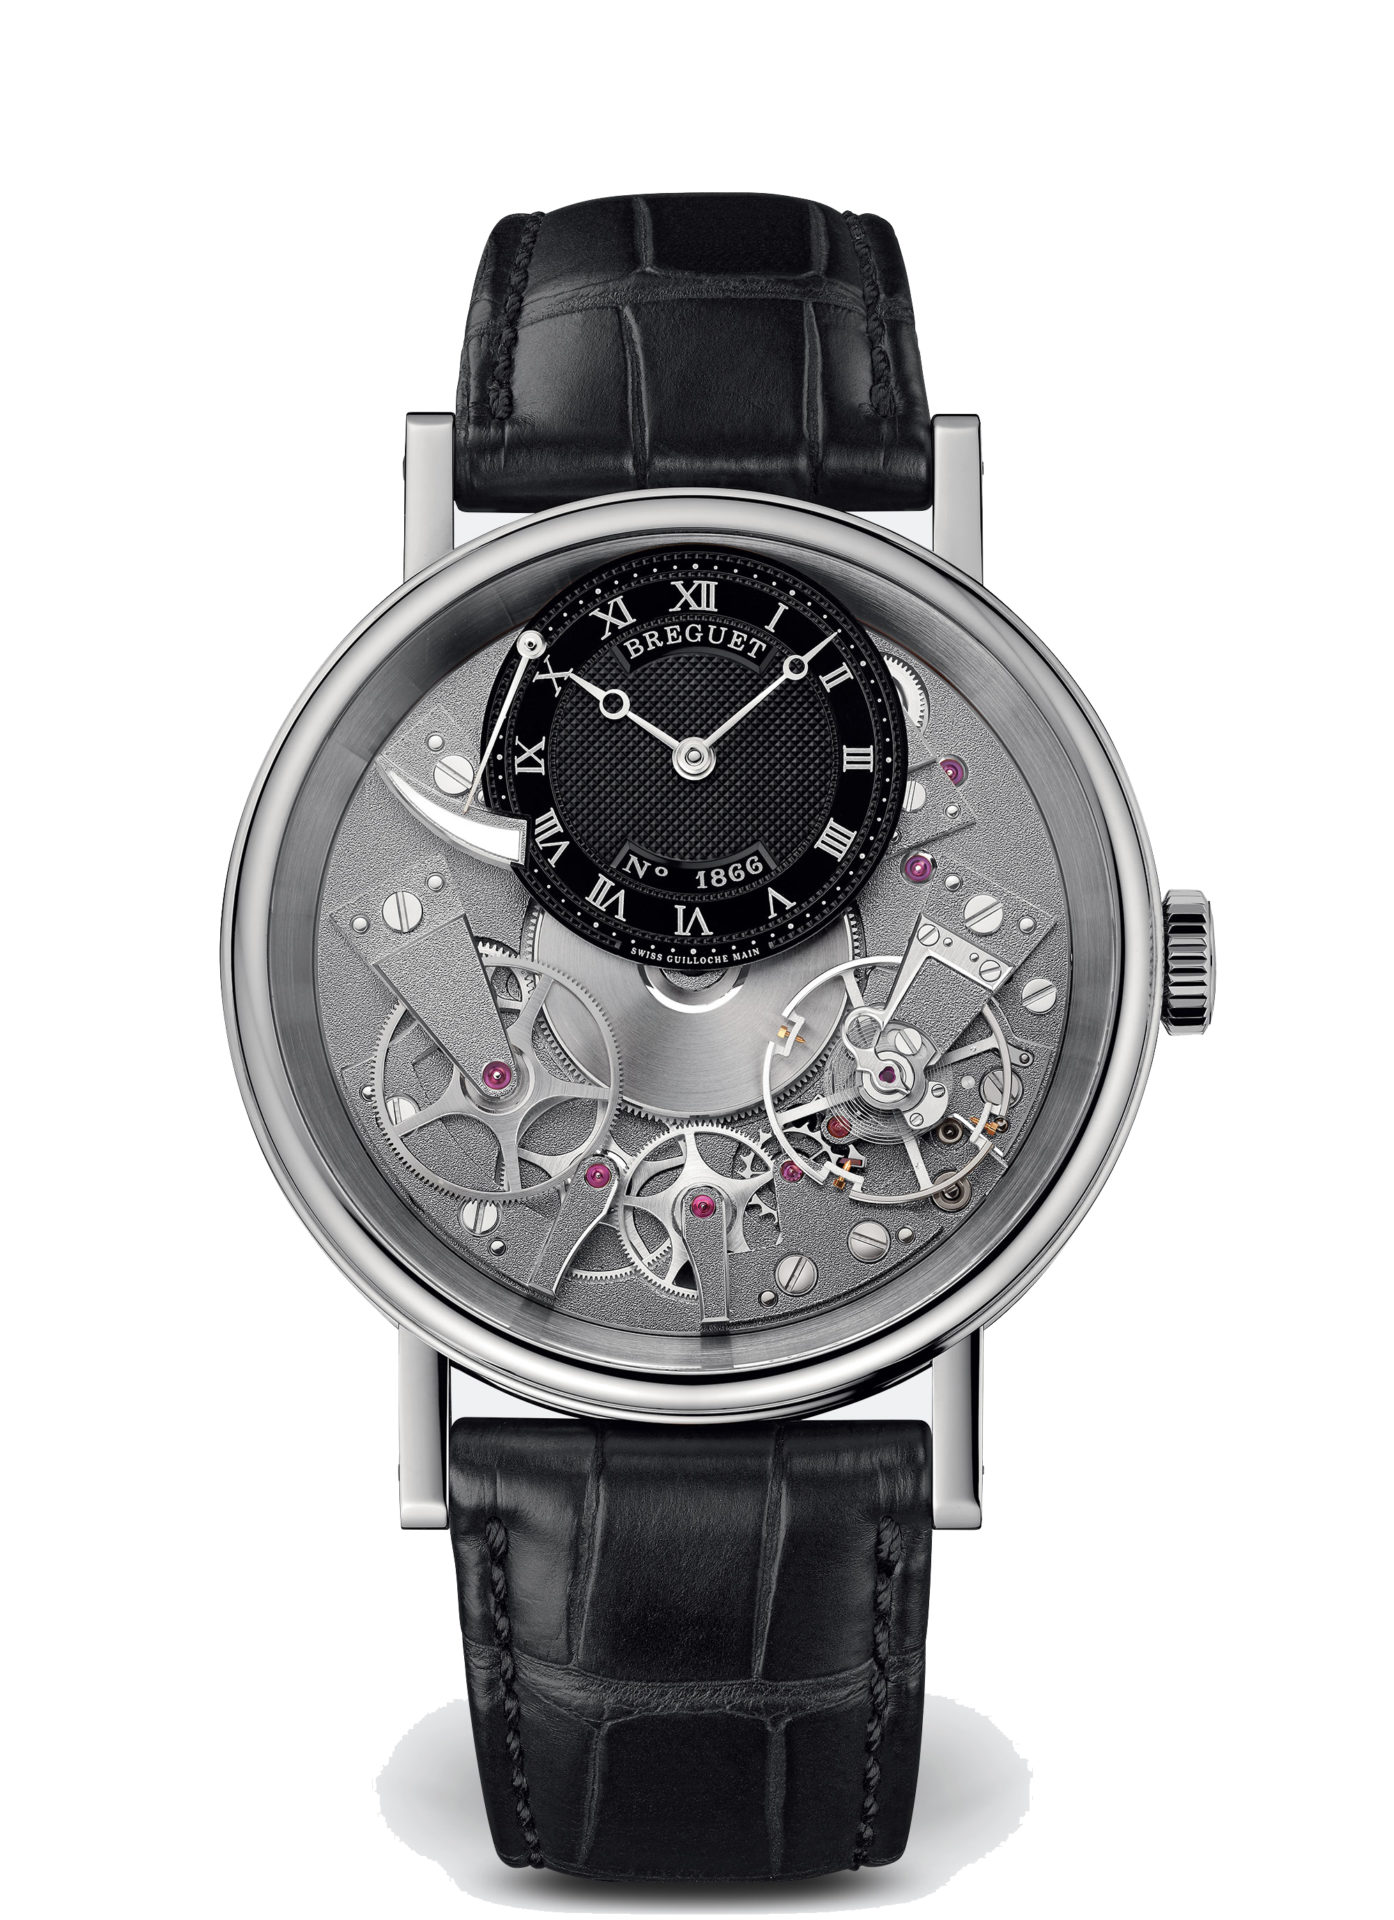 Breguet-Tradition-Hall-of-Time-7057bb-g9-9w6